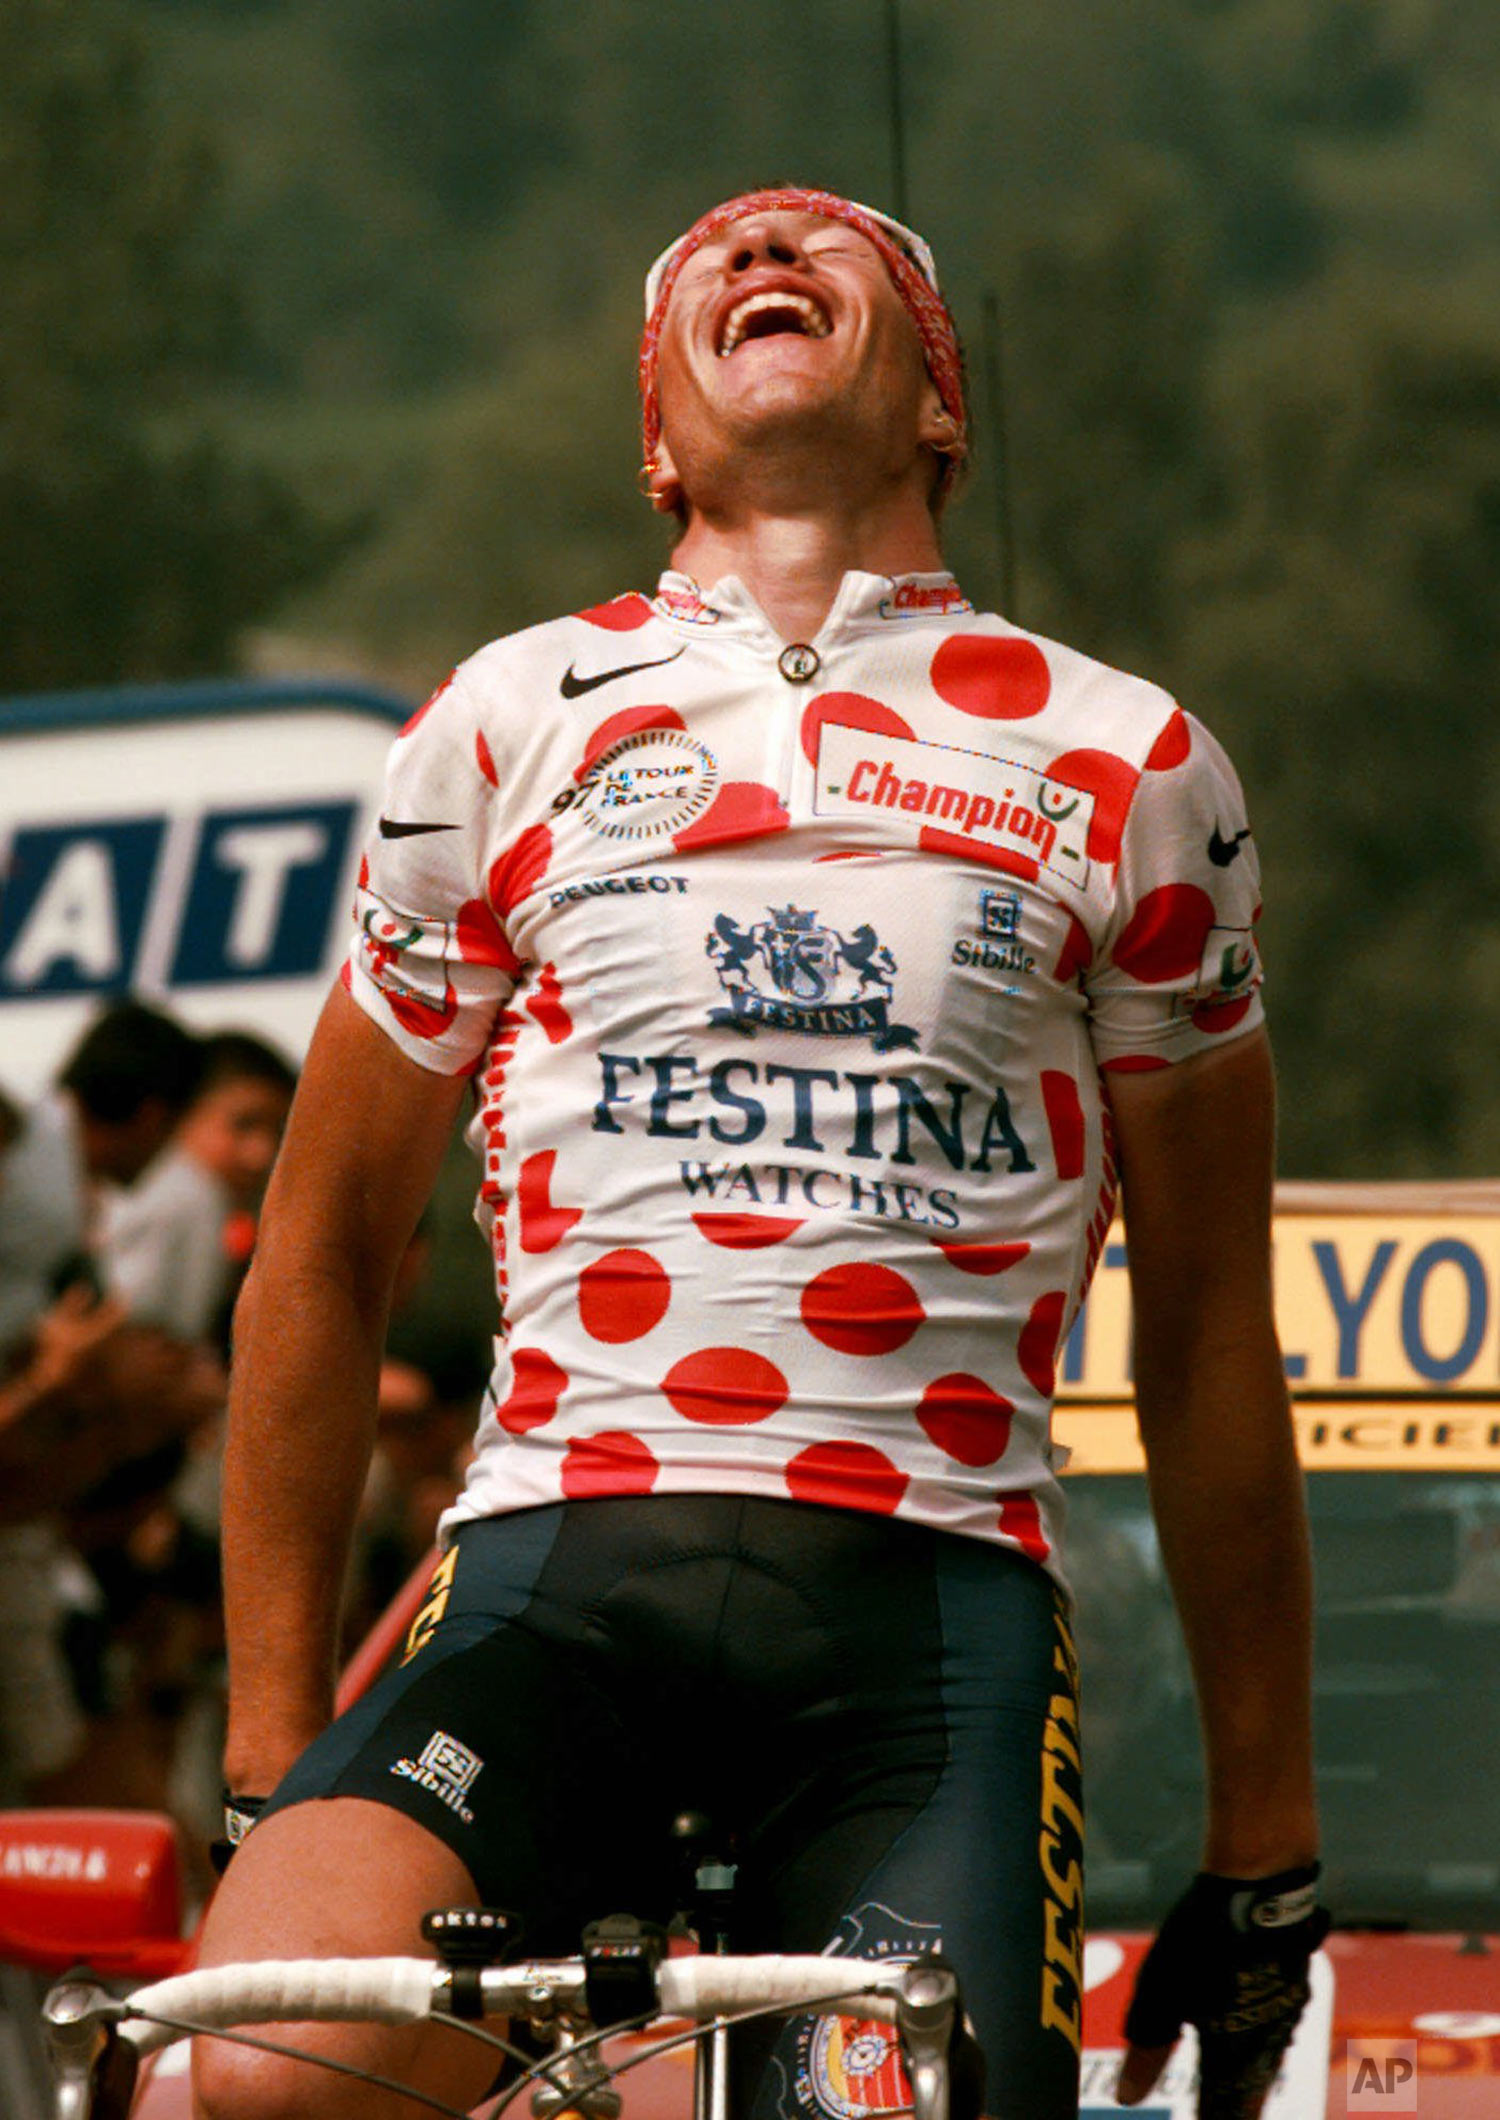 Laurent Brochard of France reacts as he crosses the finish line to win the 9th stage of the Tour de France cycling race between Pau and Loudenvielle in the Pyrenees mountains Monday July 14, 1997. (AP Photo/Laurent Rebours)